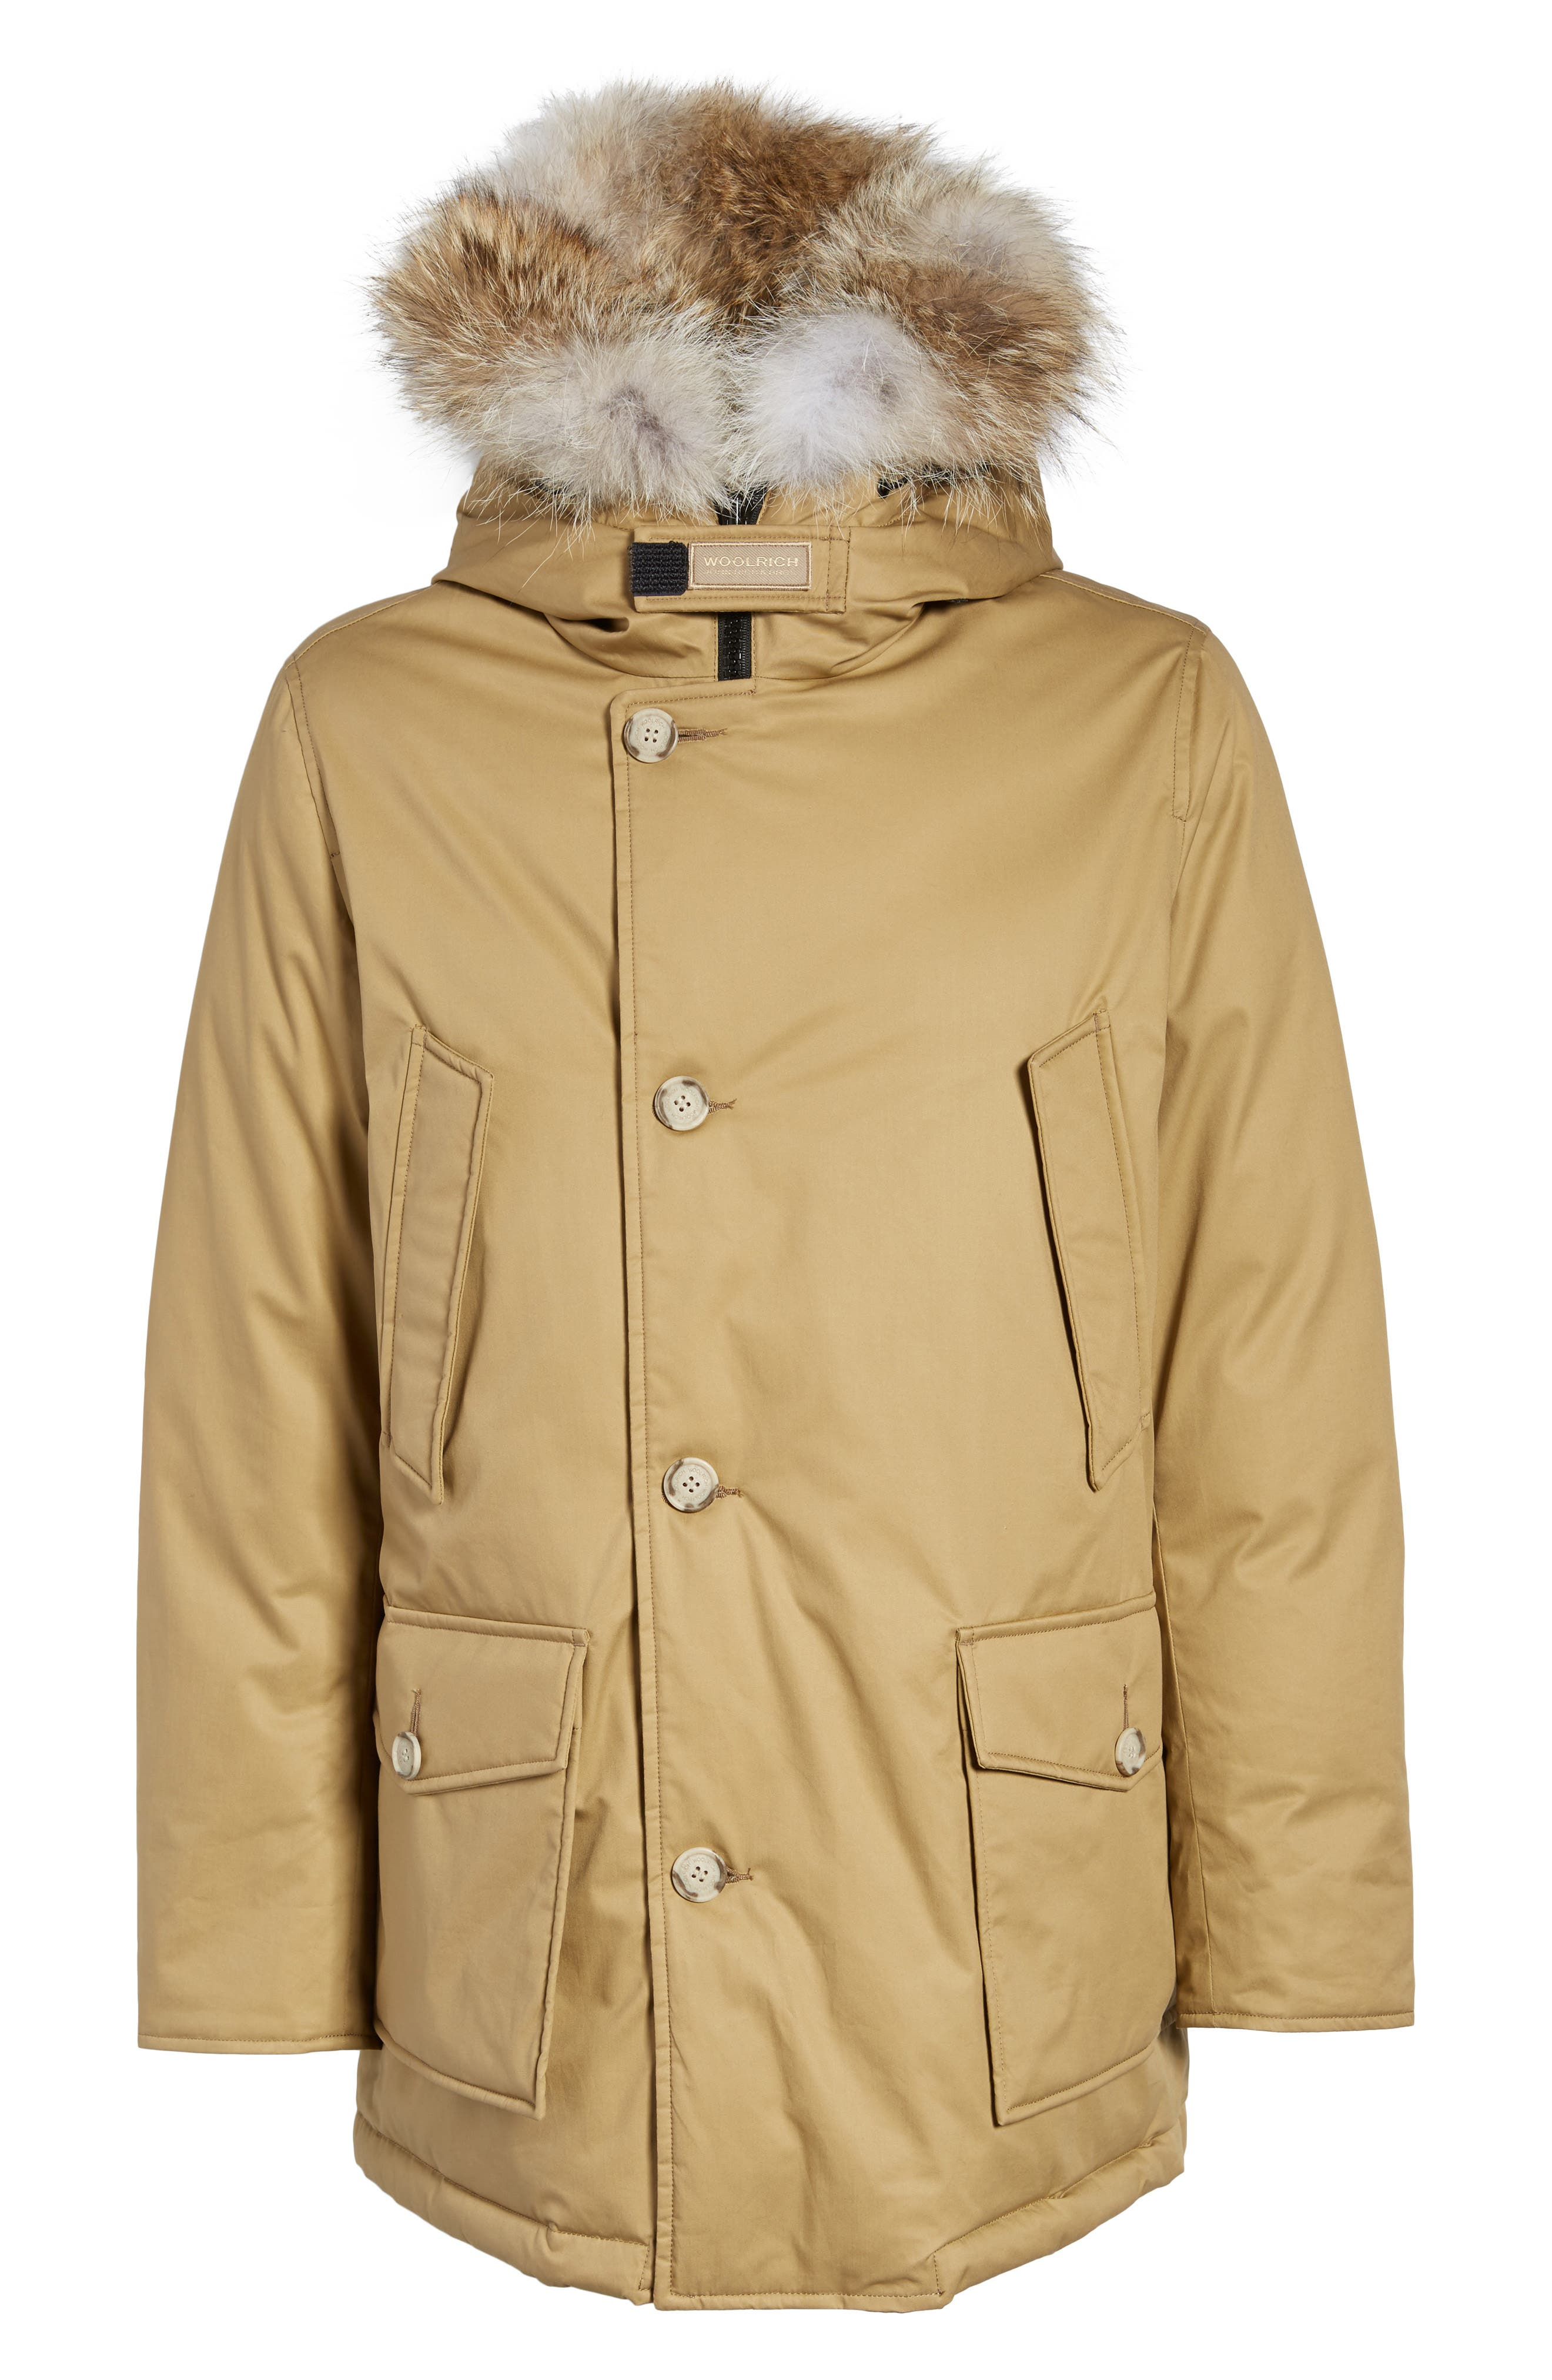 John Rich & Bros. Laminated Cotton Down Parka with Genuine Coyote Fur Trim,                             Alternate thumbnail 10, color,